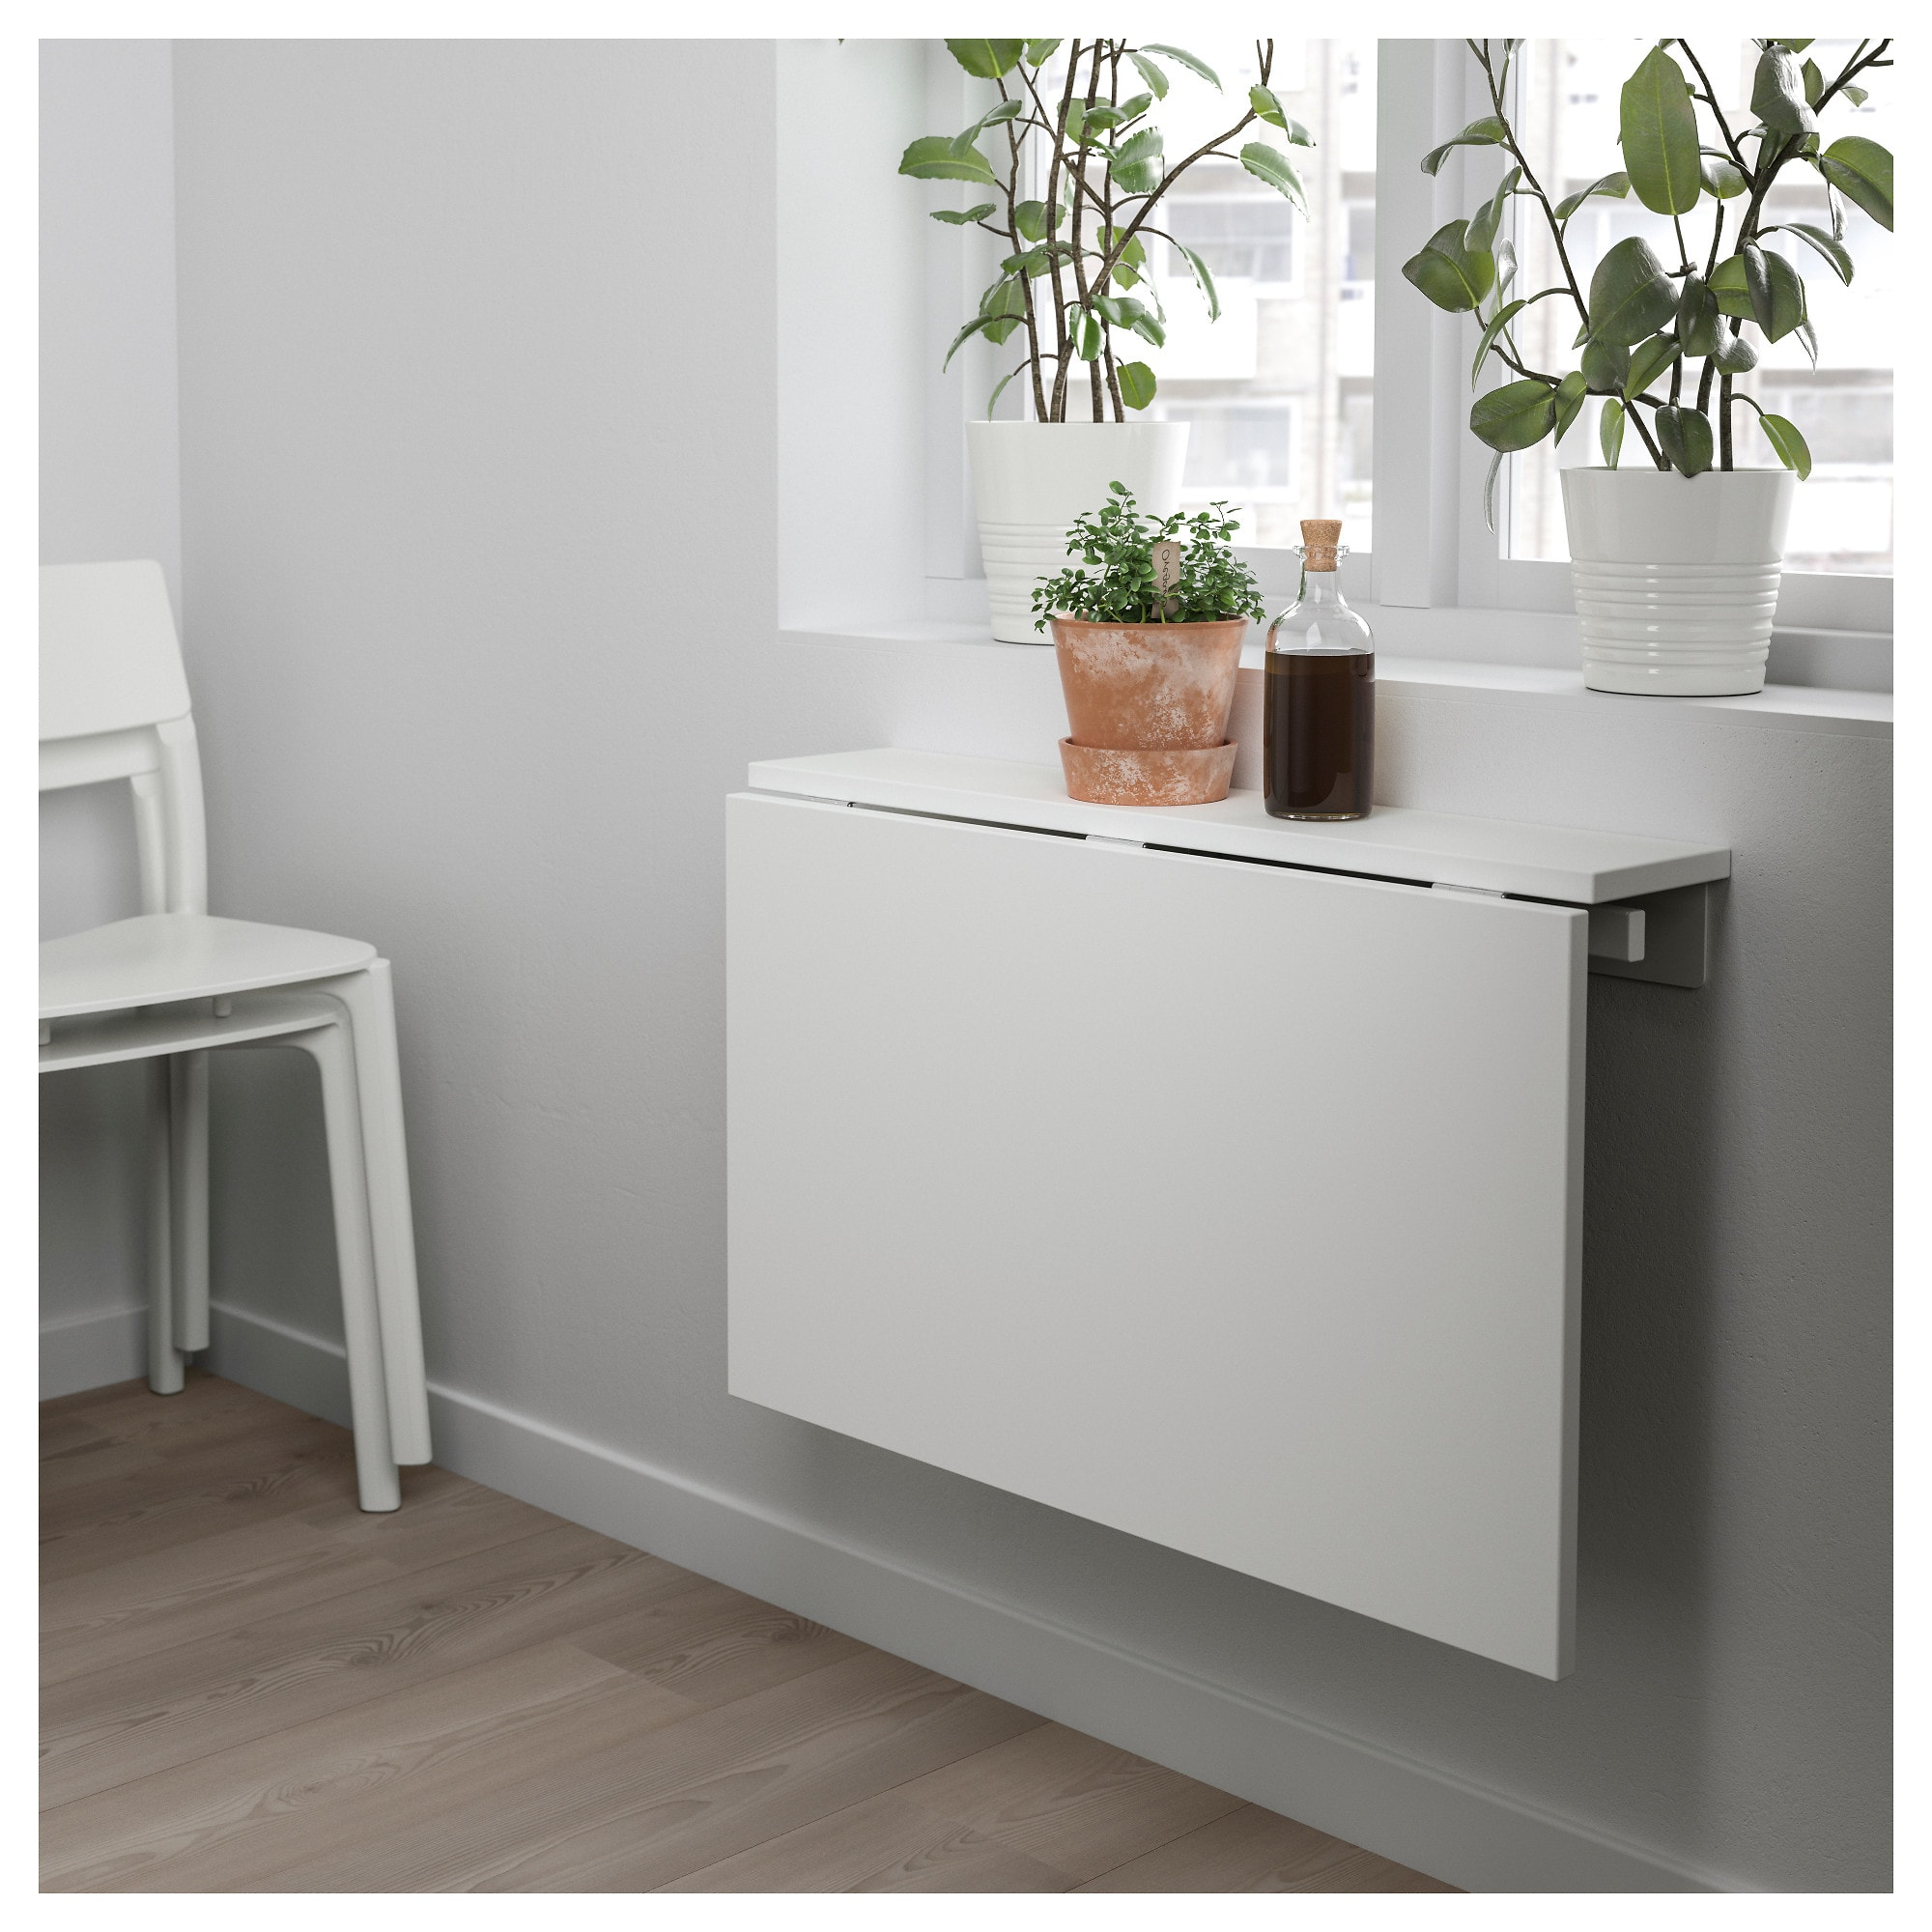 Mesa Plegable De Pared Q5df norberg Mesa Abatible De Pared Blanco 74 X 60 Cm Ikea